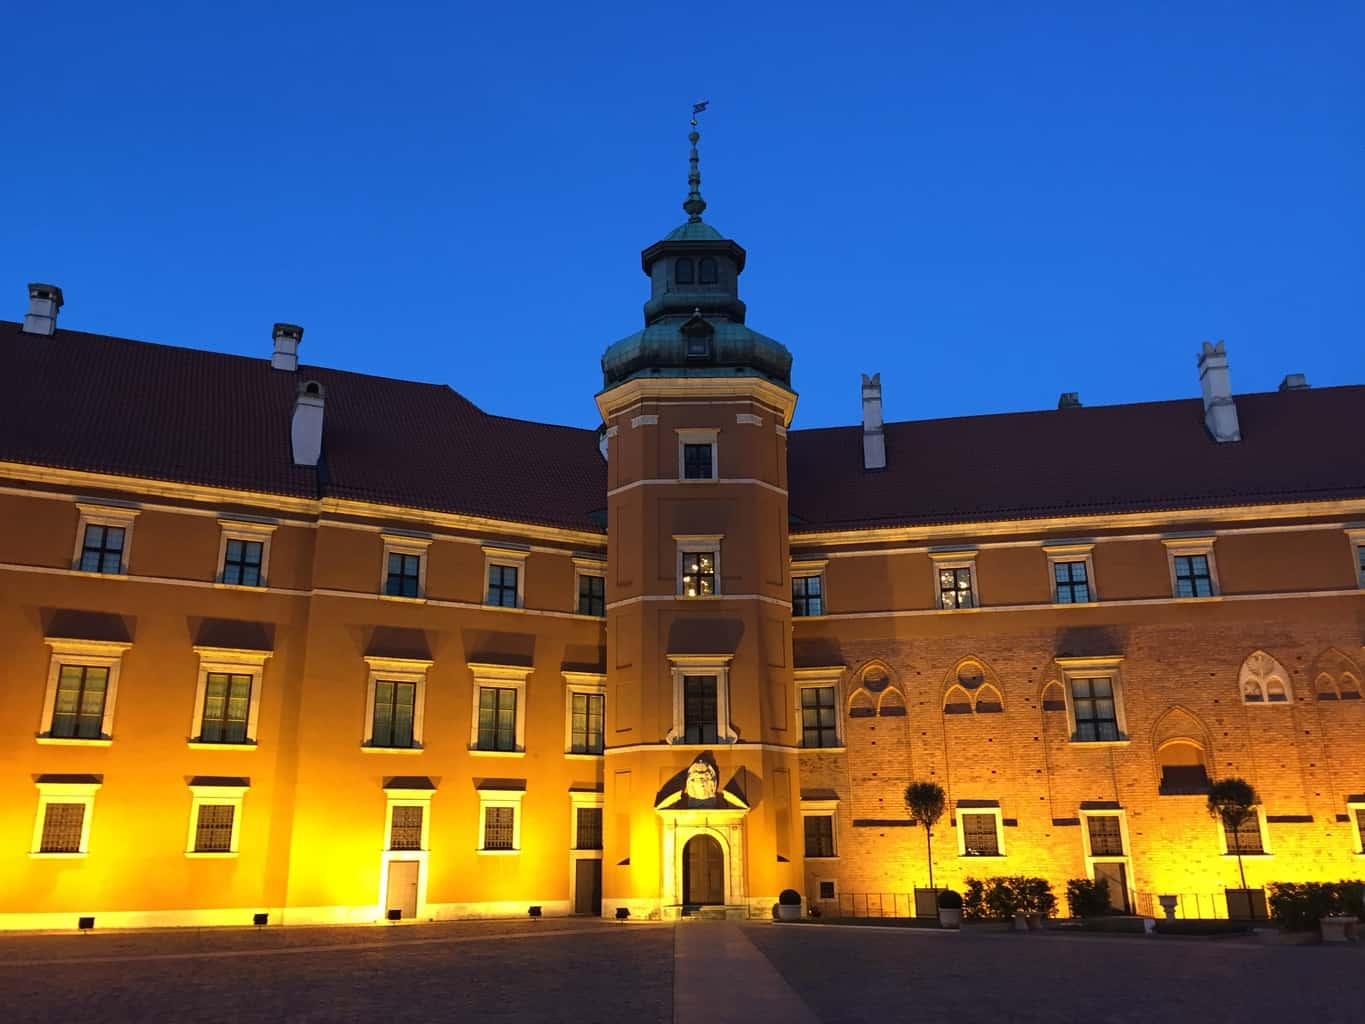 The Royal Castle in Warsaw